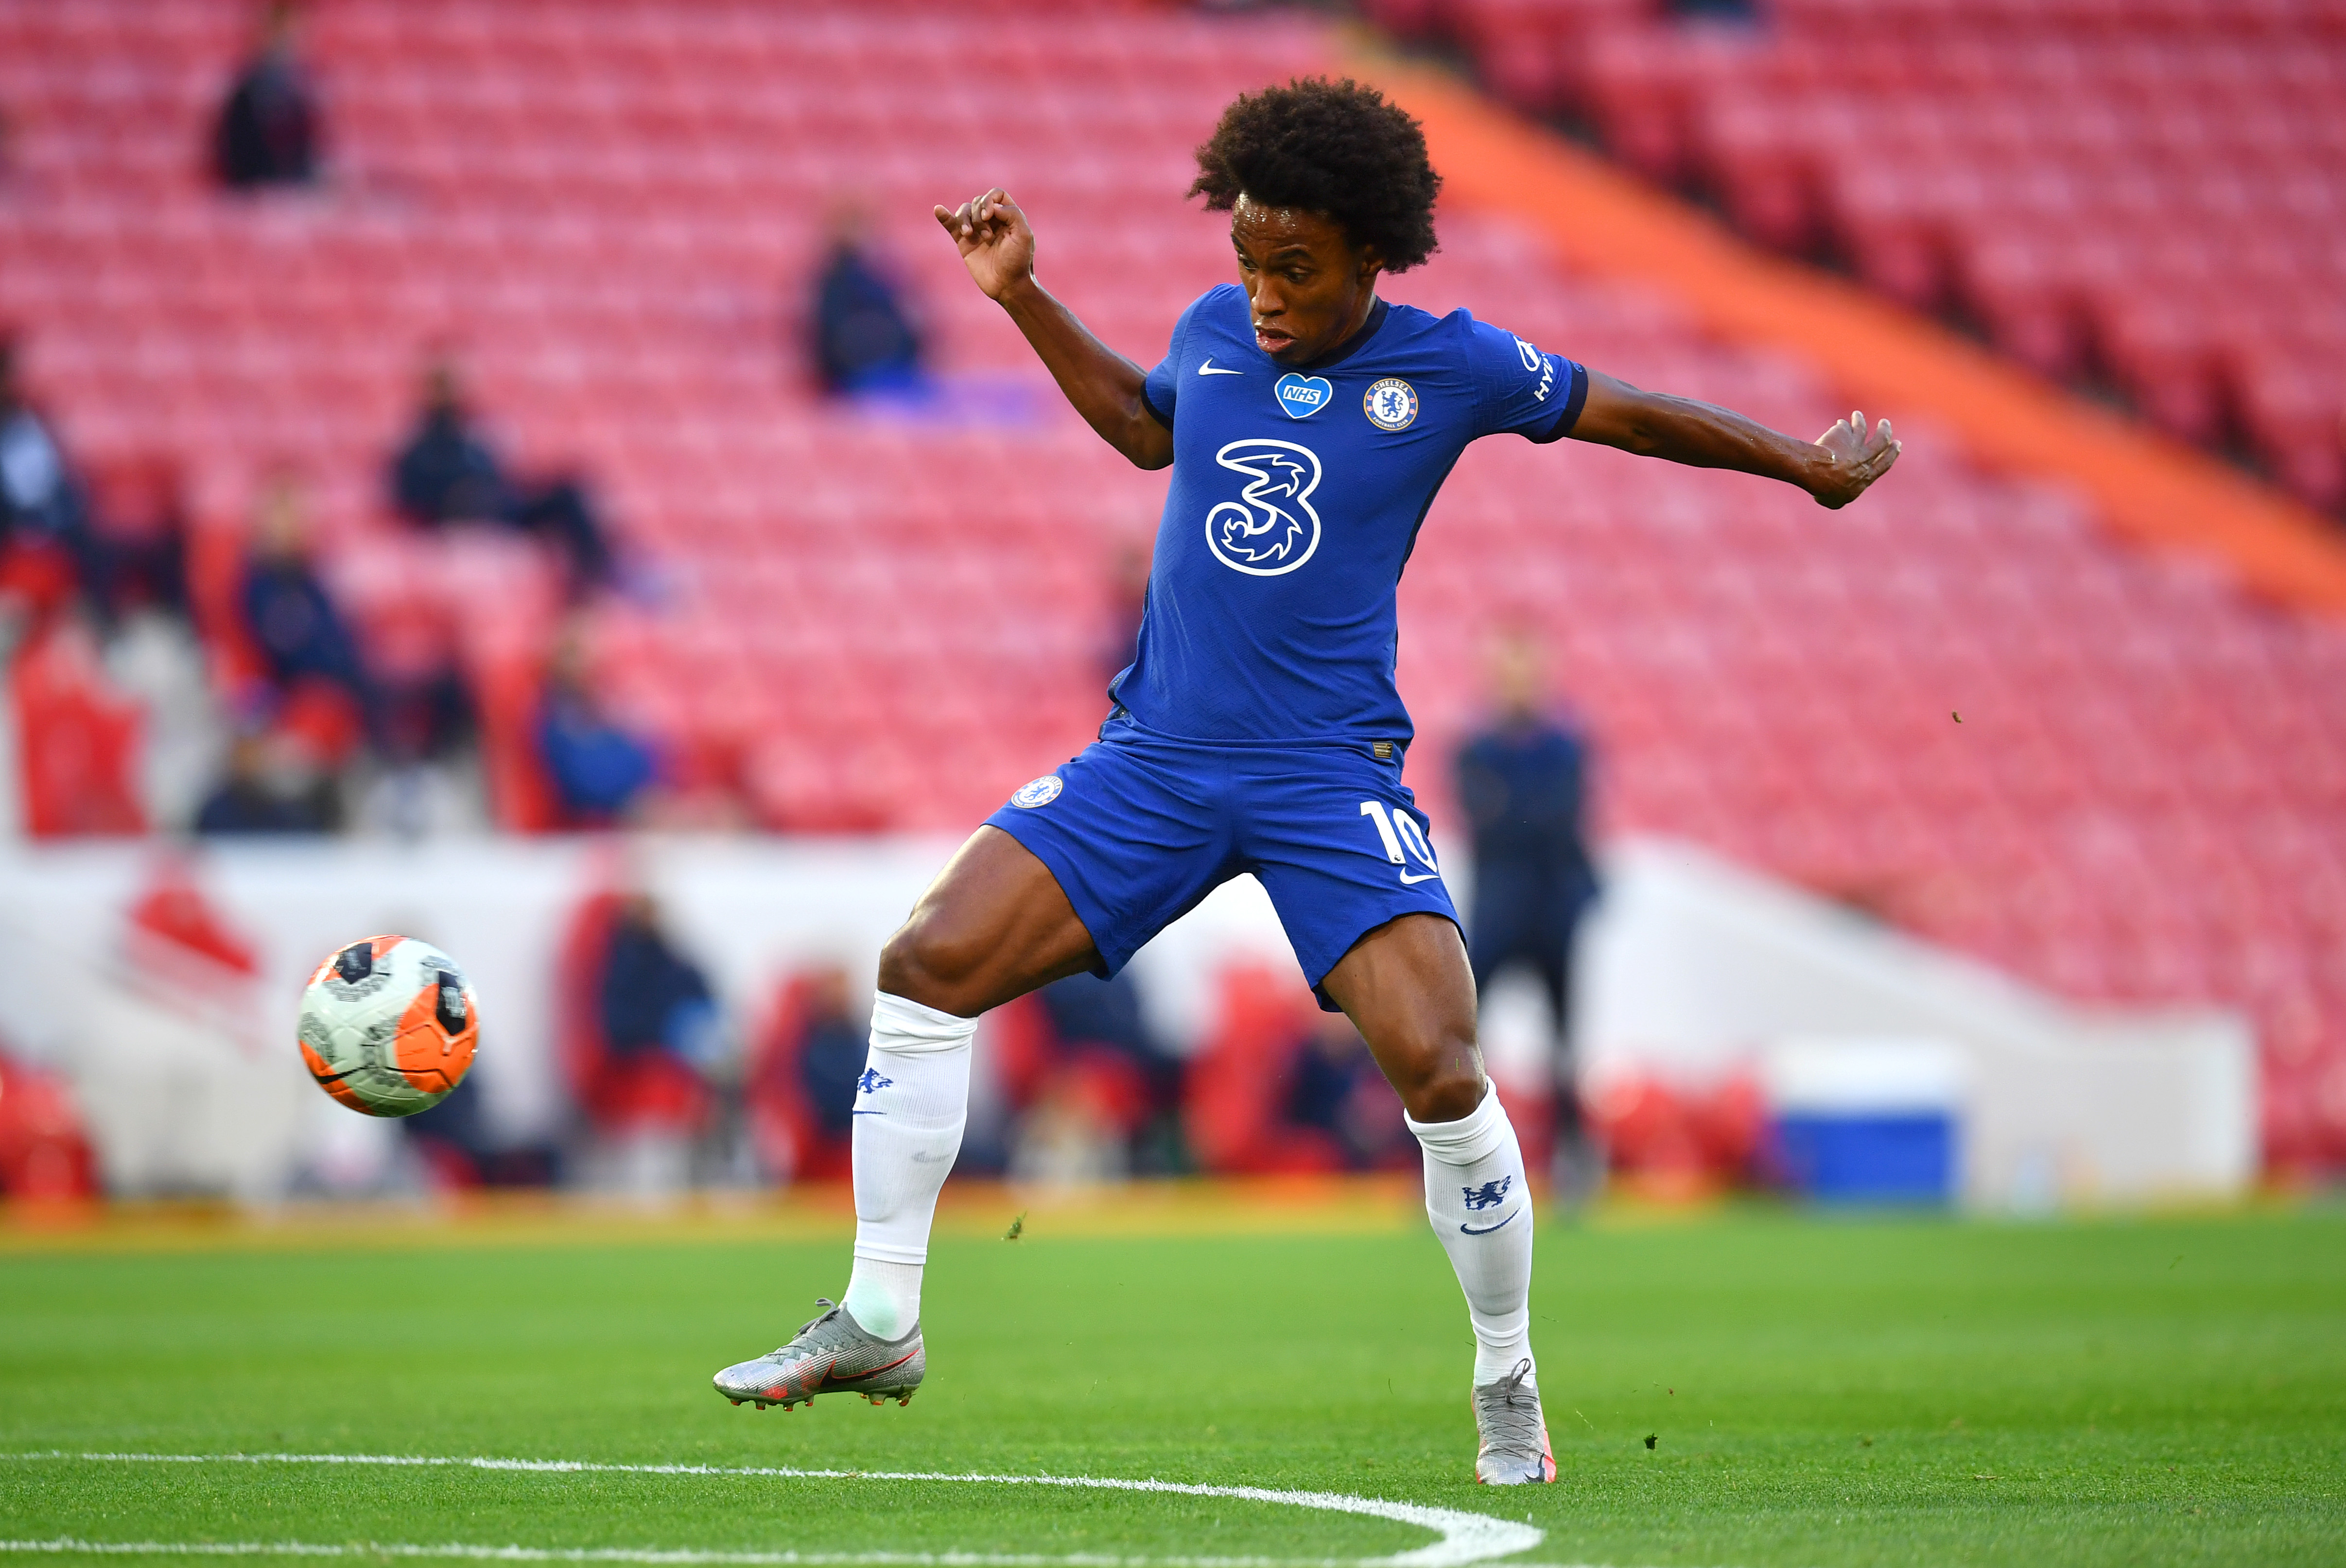 Arsenal offer three-year contract to Chelsea playmaker Willian who is seen in the picture